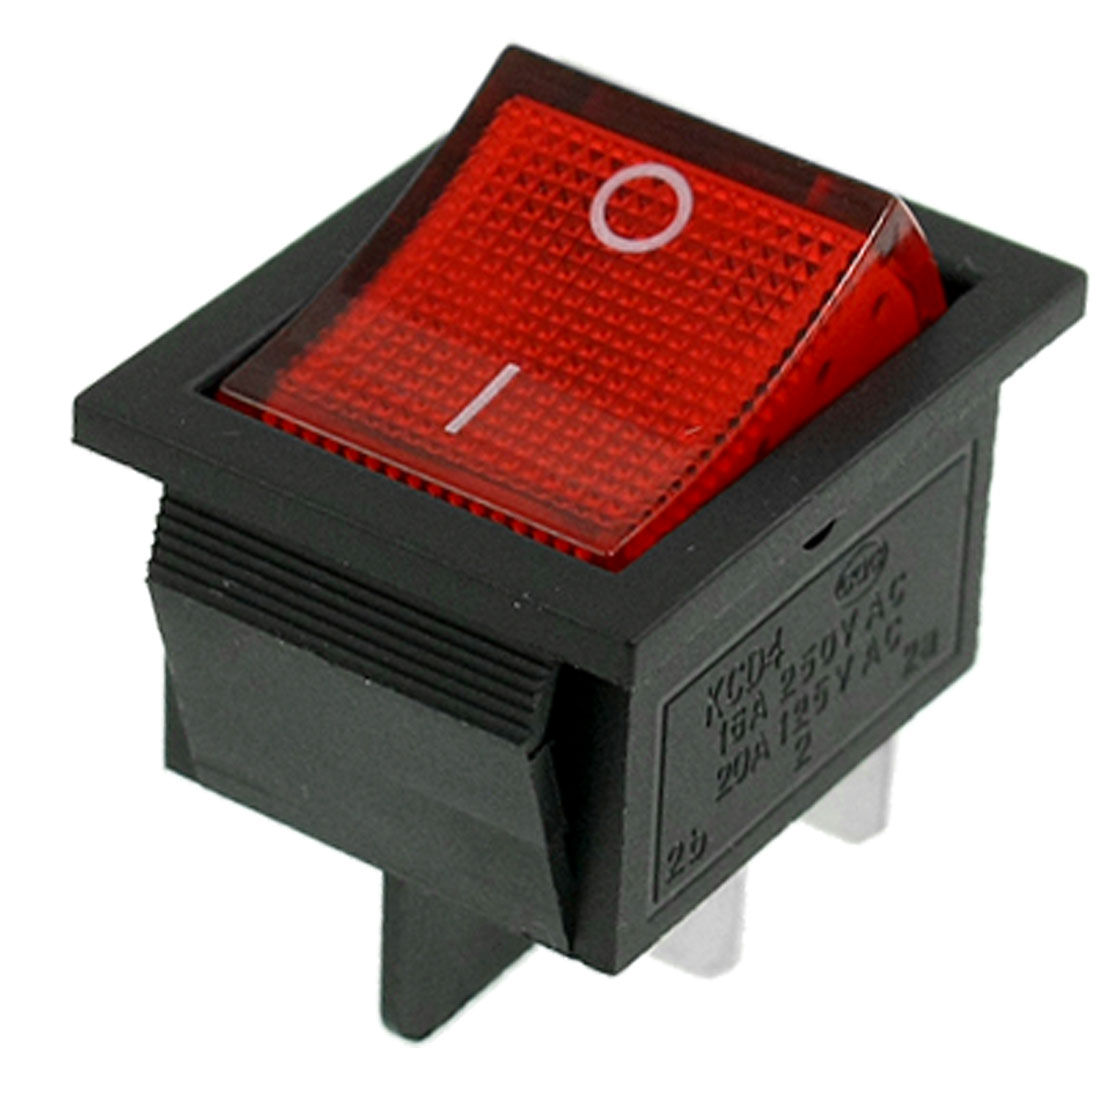 Red Light DPST ON/OFF Snap in Boat Rocker Switch 16A/250V 20A/125V AC 30x21mm